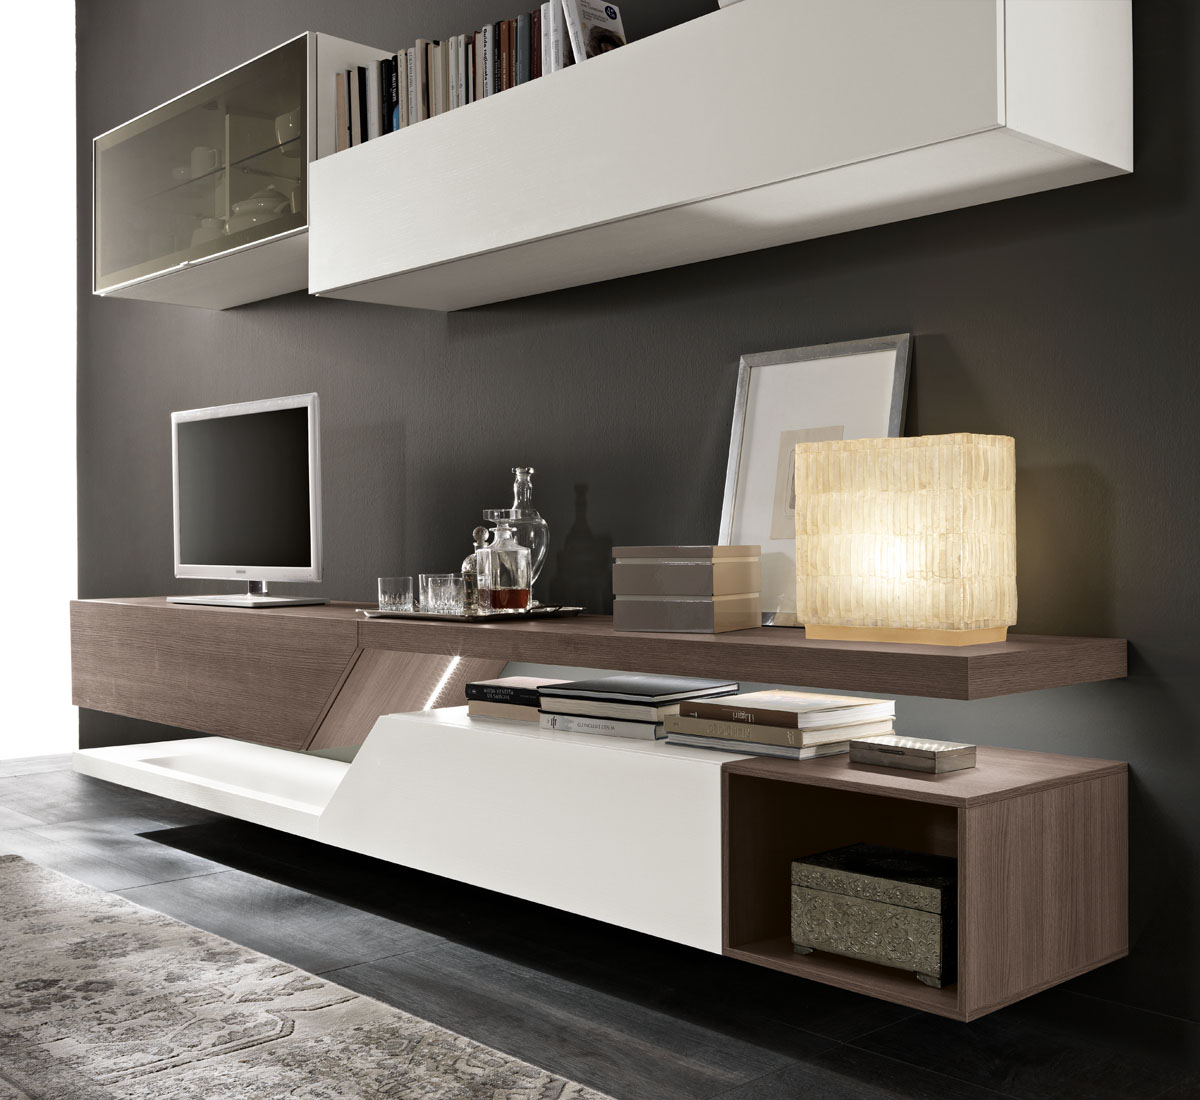 living room modular furniture. exential t04 a modern and essential living room solution itu0027s contemporary composition with white ivory ash wood cabinets that can be arranged modular furniture